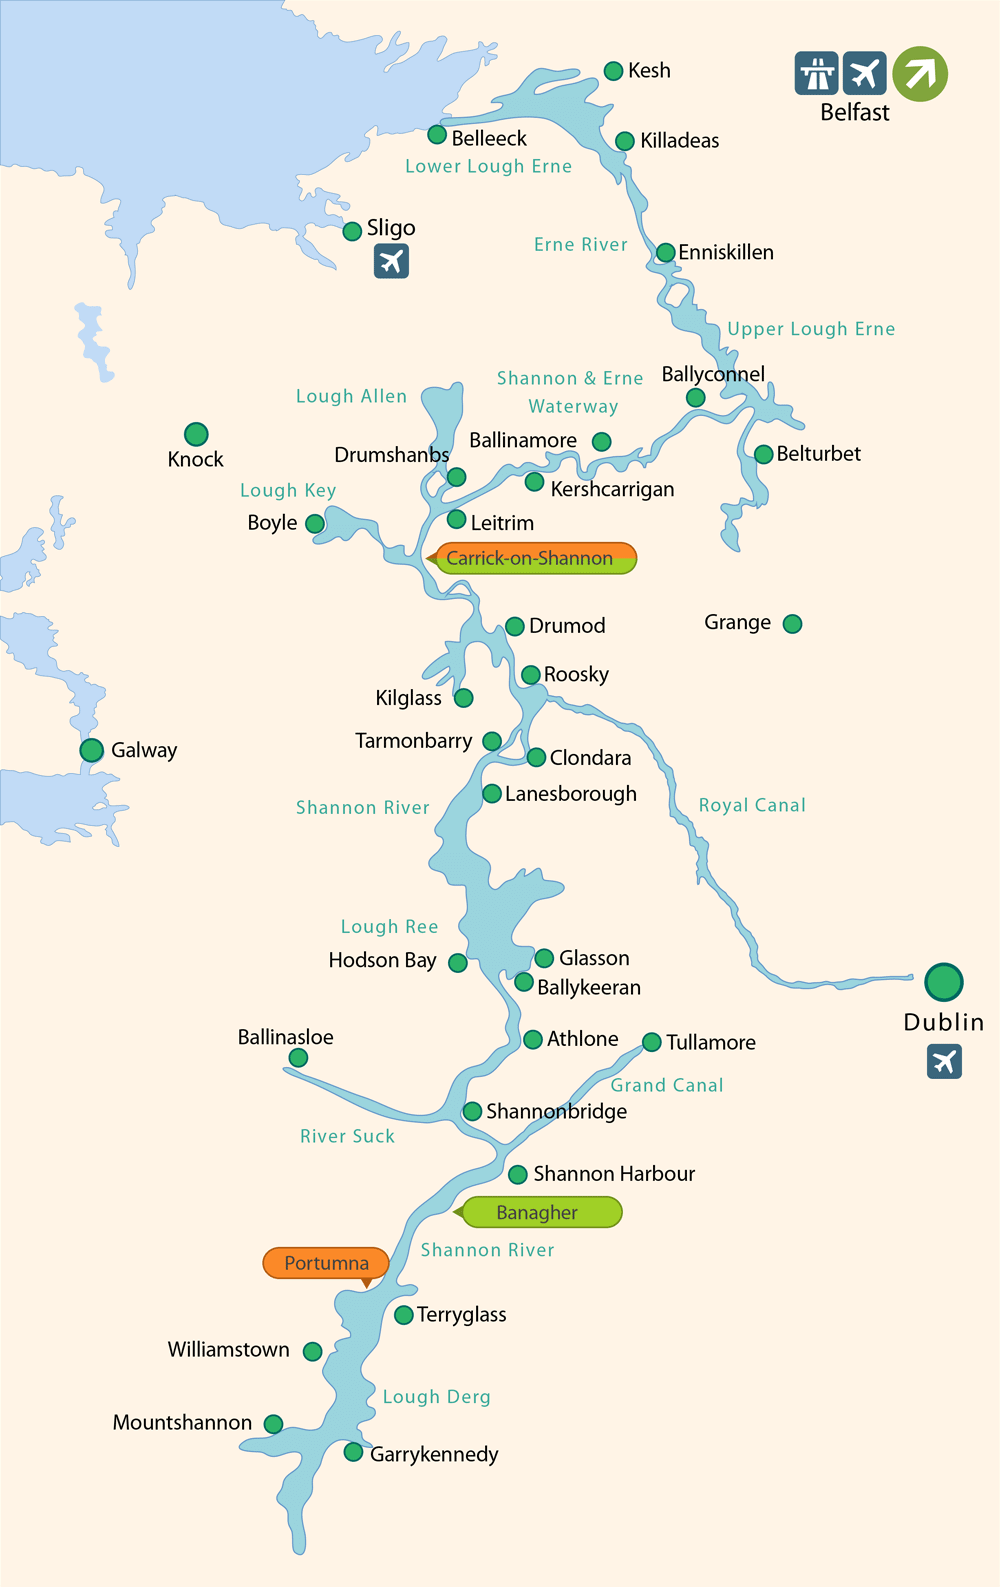 Map Of Ireland With Rivers.Boat Hire On Ireland Rivers And Canals Boating Holidays